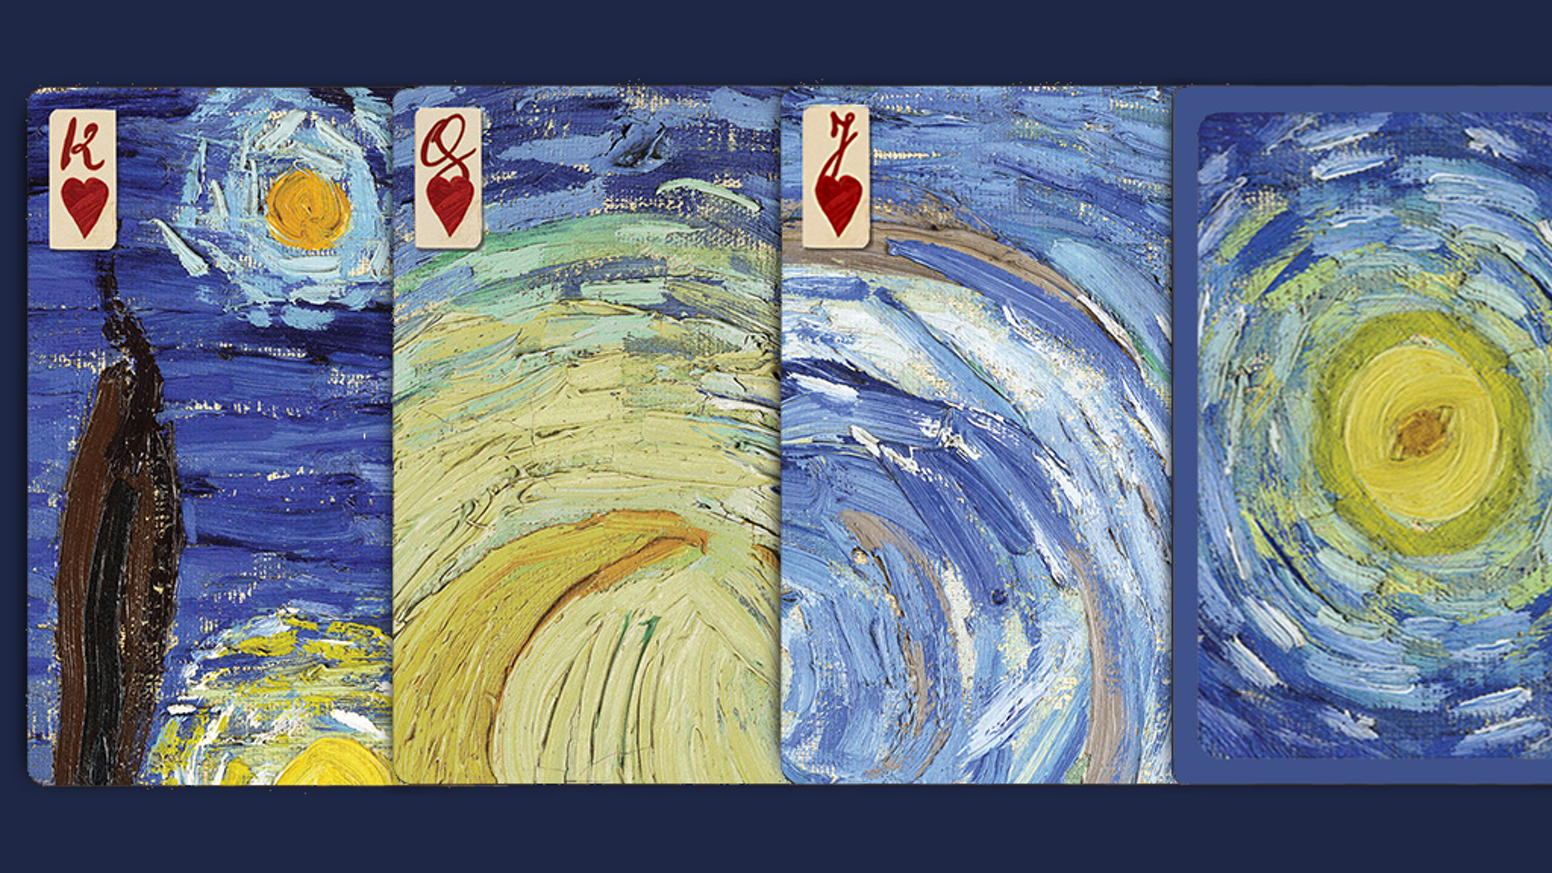 Vincent van Gogh's The Starry Night playing cards as a puzzle; featuring Vincent's handwriting & suits found in his paintings.